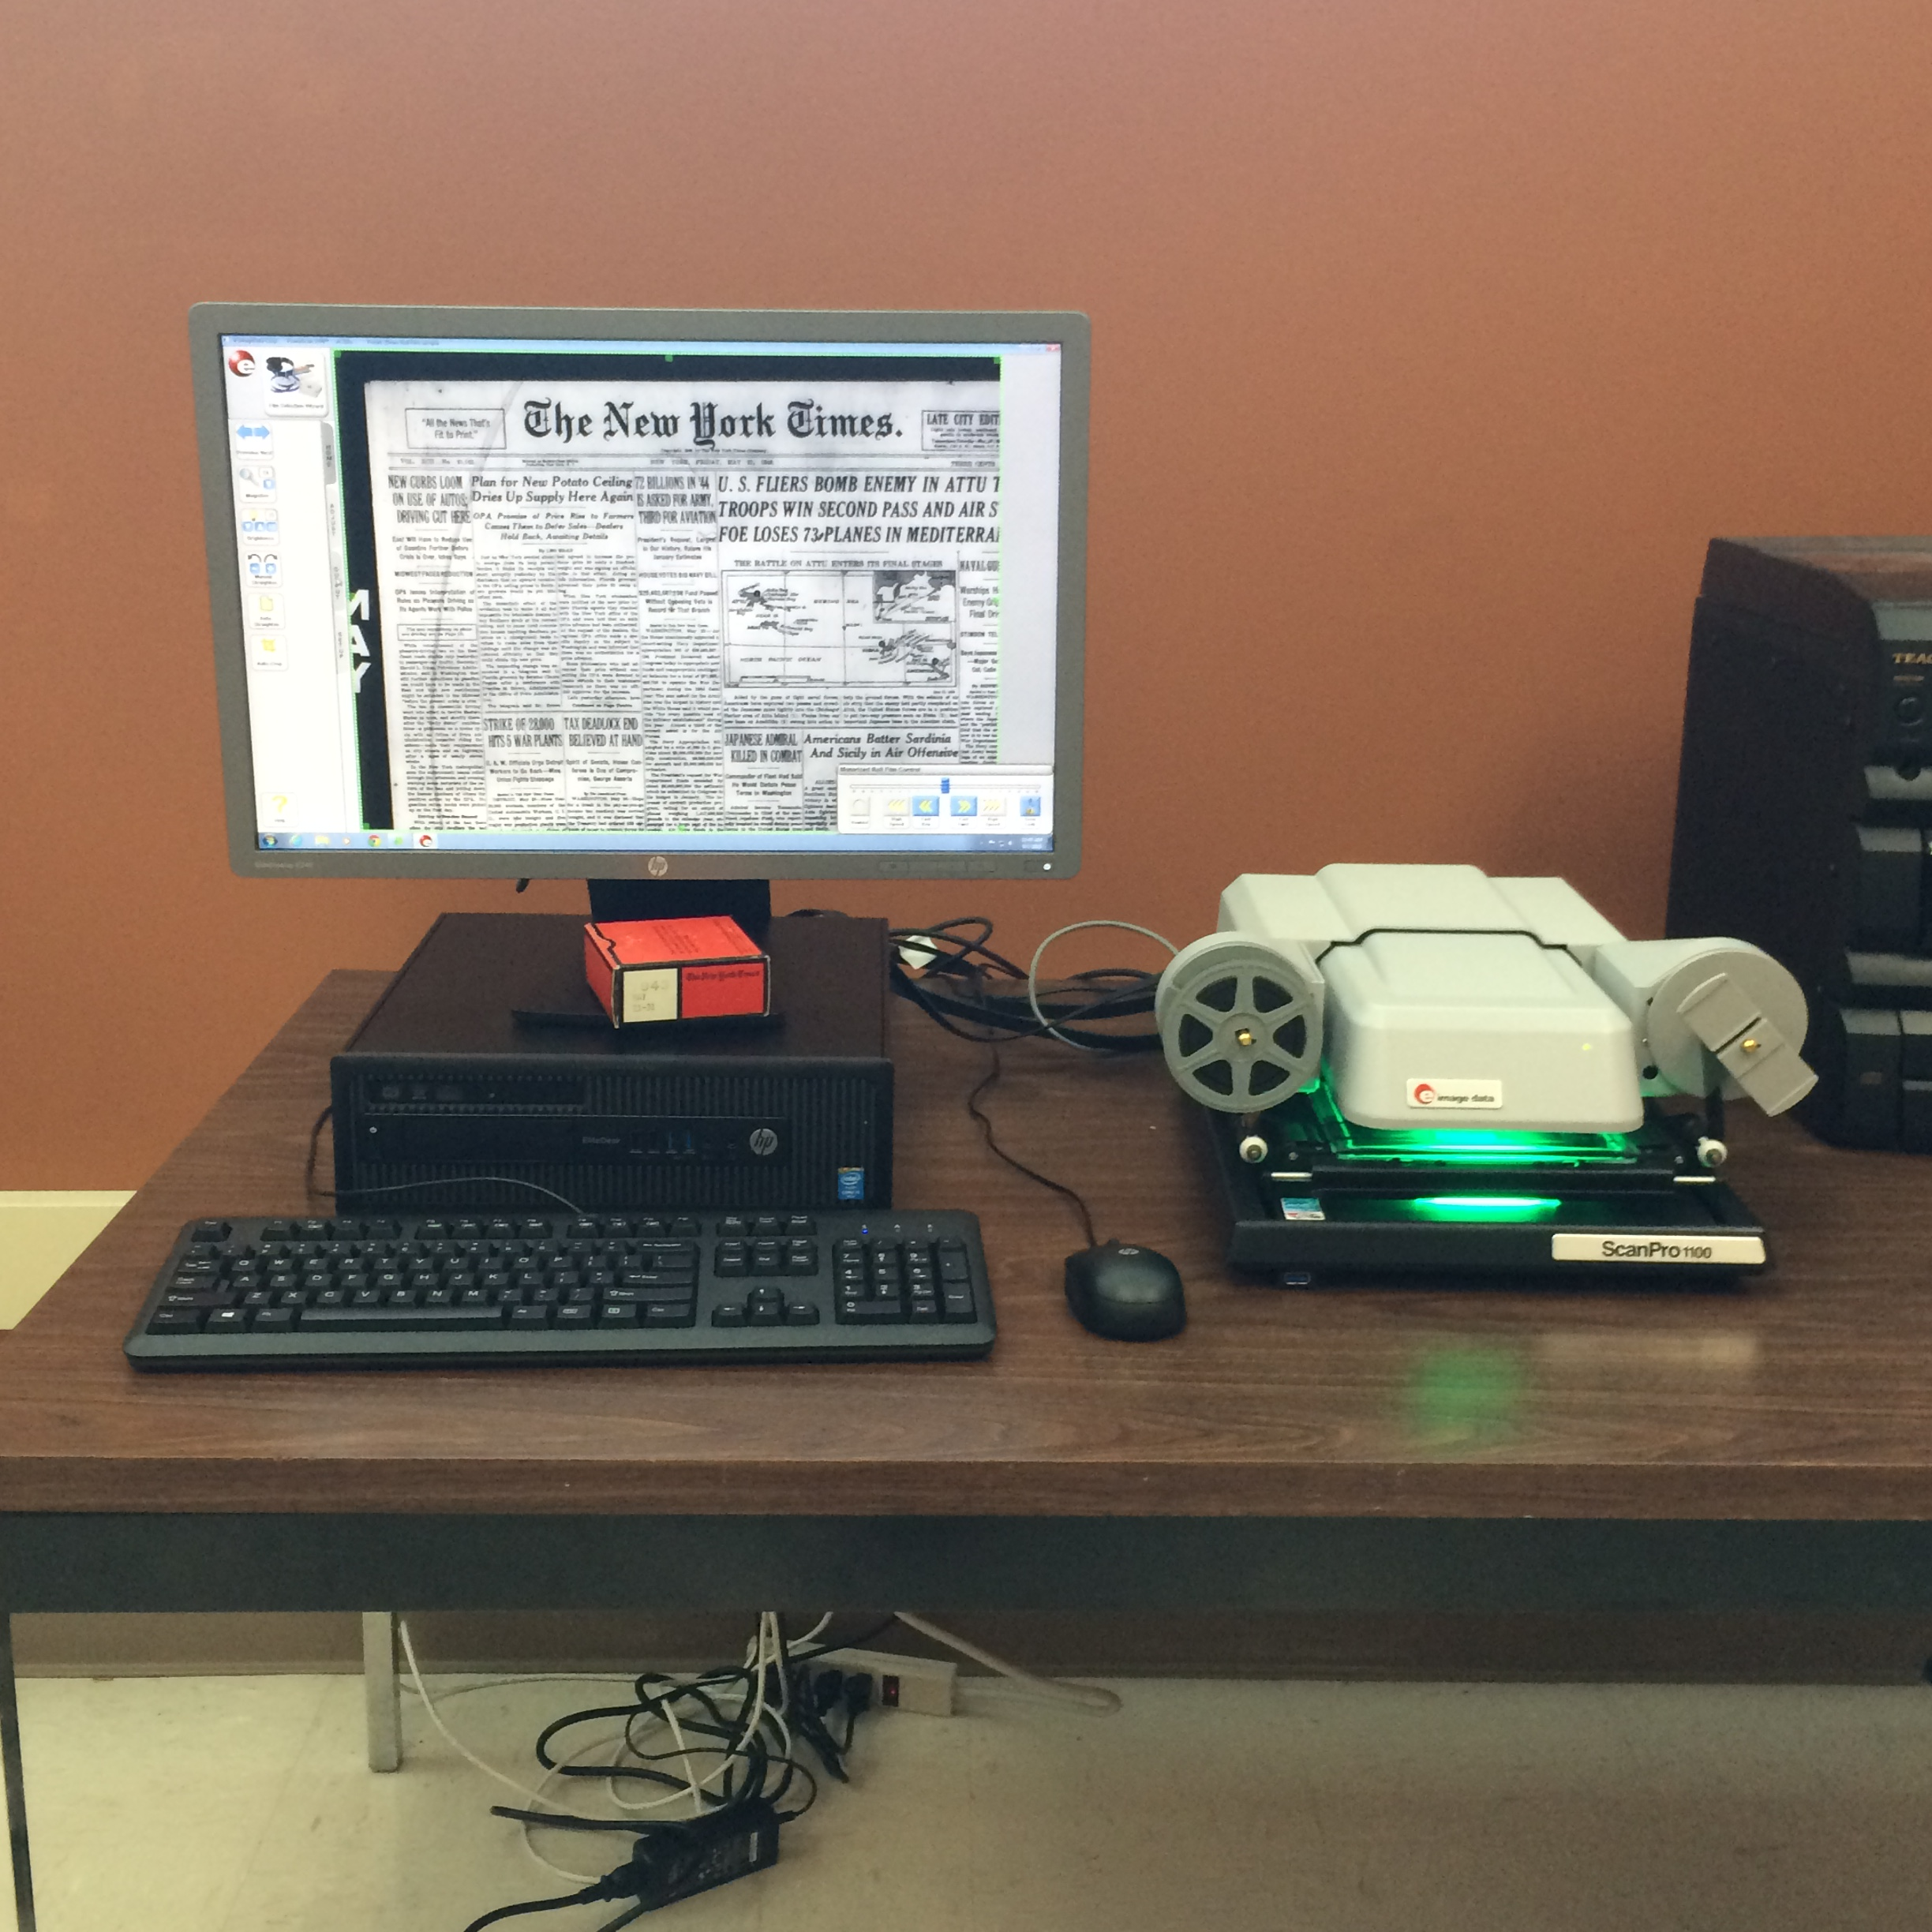 photo of microfilm reader next to a computer displaying new york times on microfilm